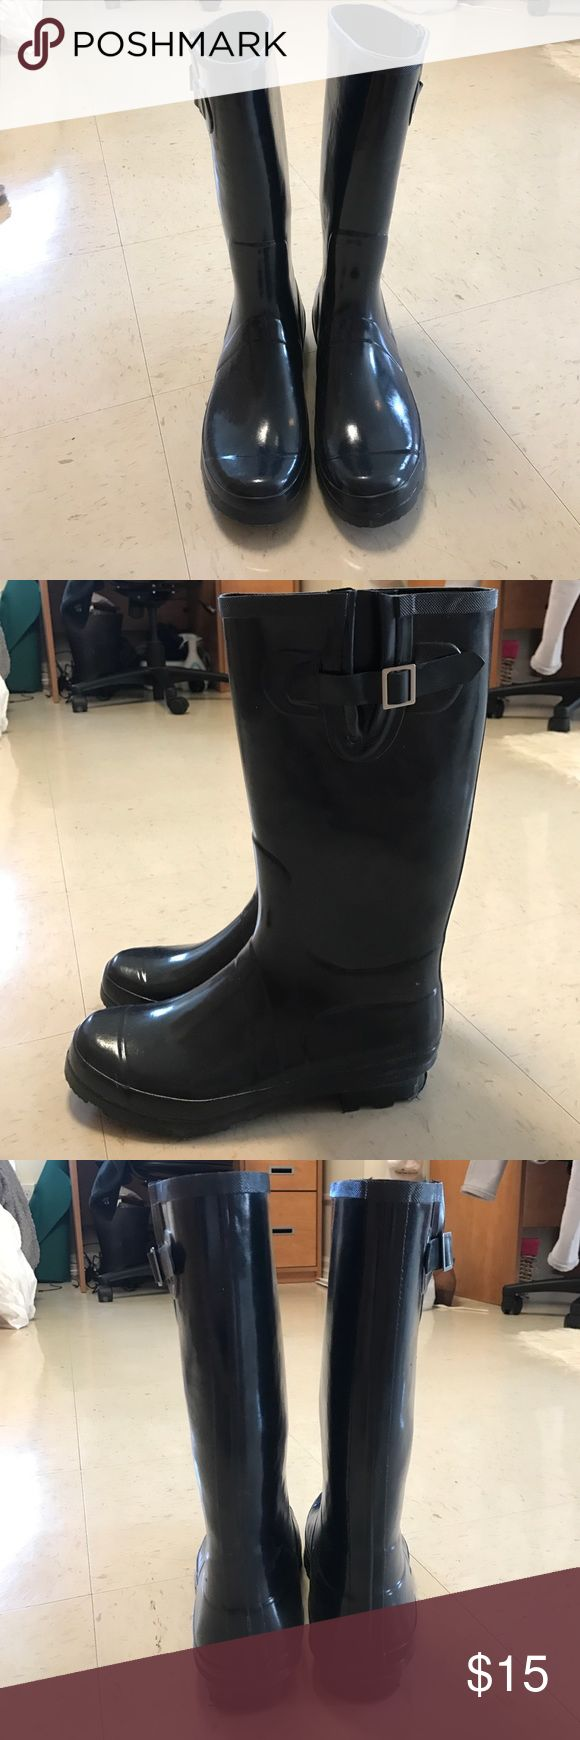 Rain boots Navy Blue Wellie rain roots used once. Good for rainy days, festivals, and more! Shoes Winter & Rain Boots